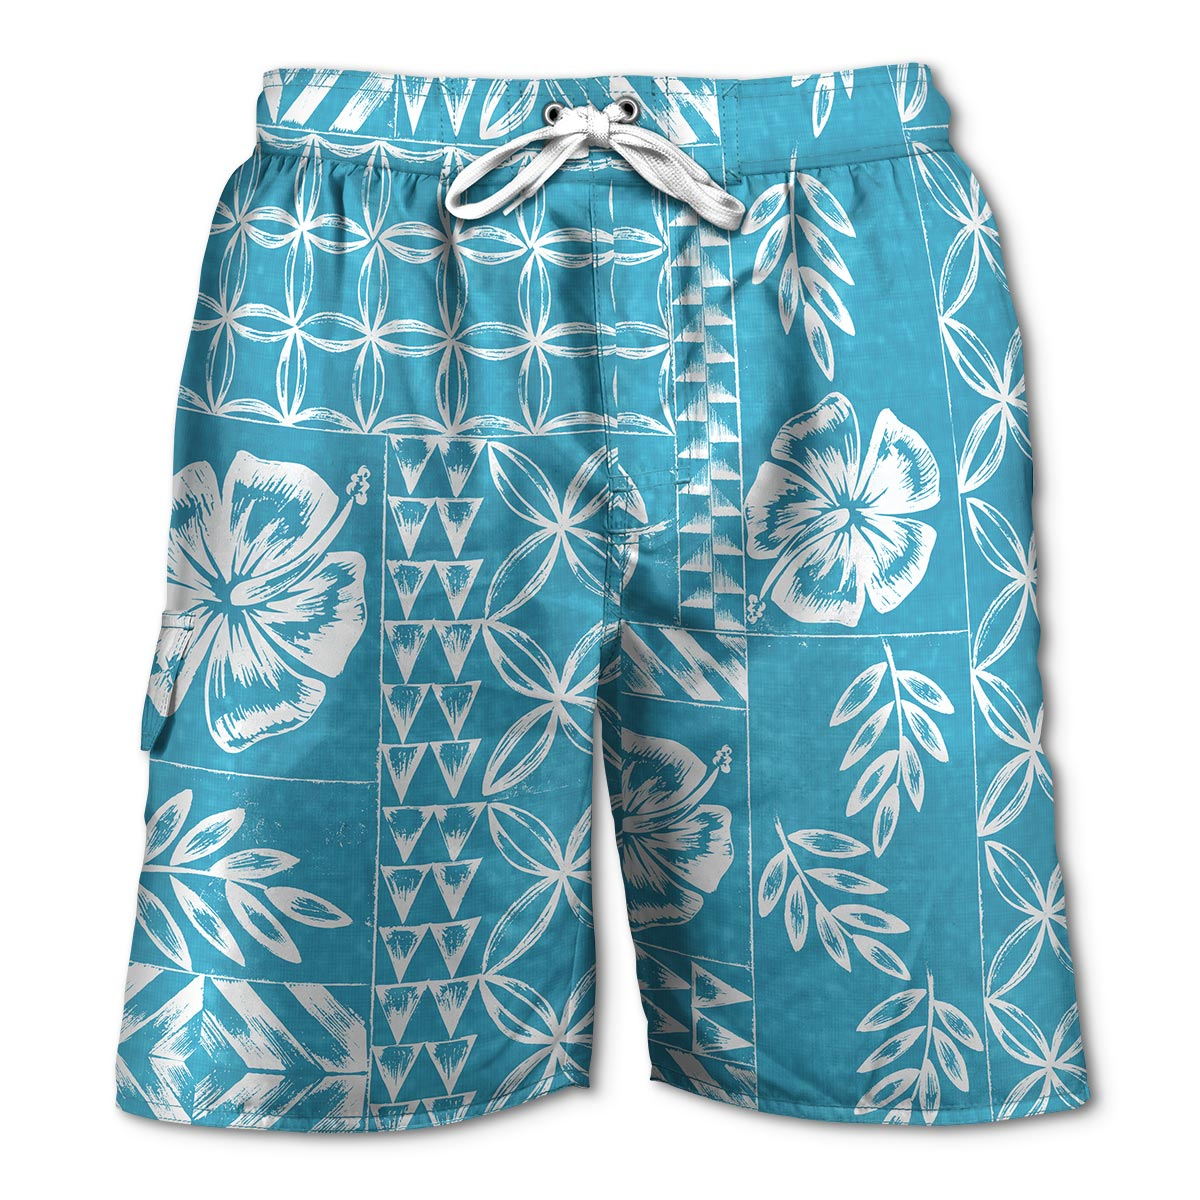 Newport Blue - Swim Shorts | Tapa - Bright Blue